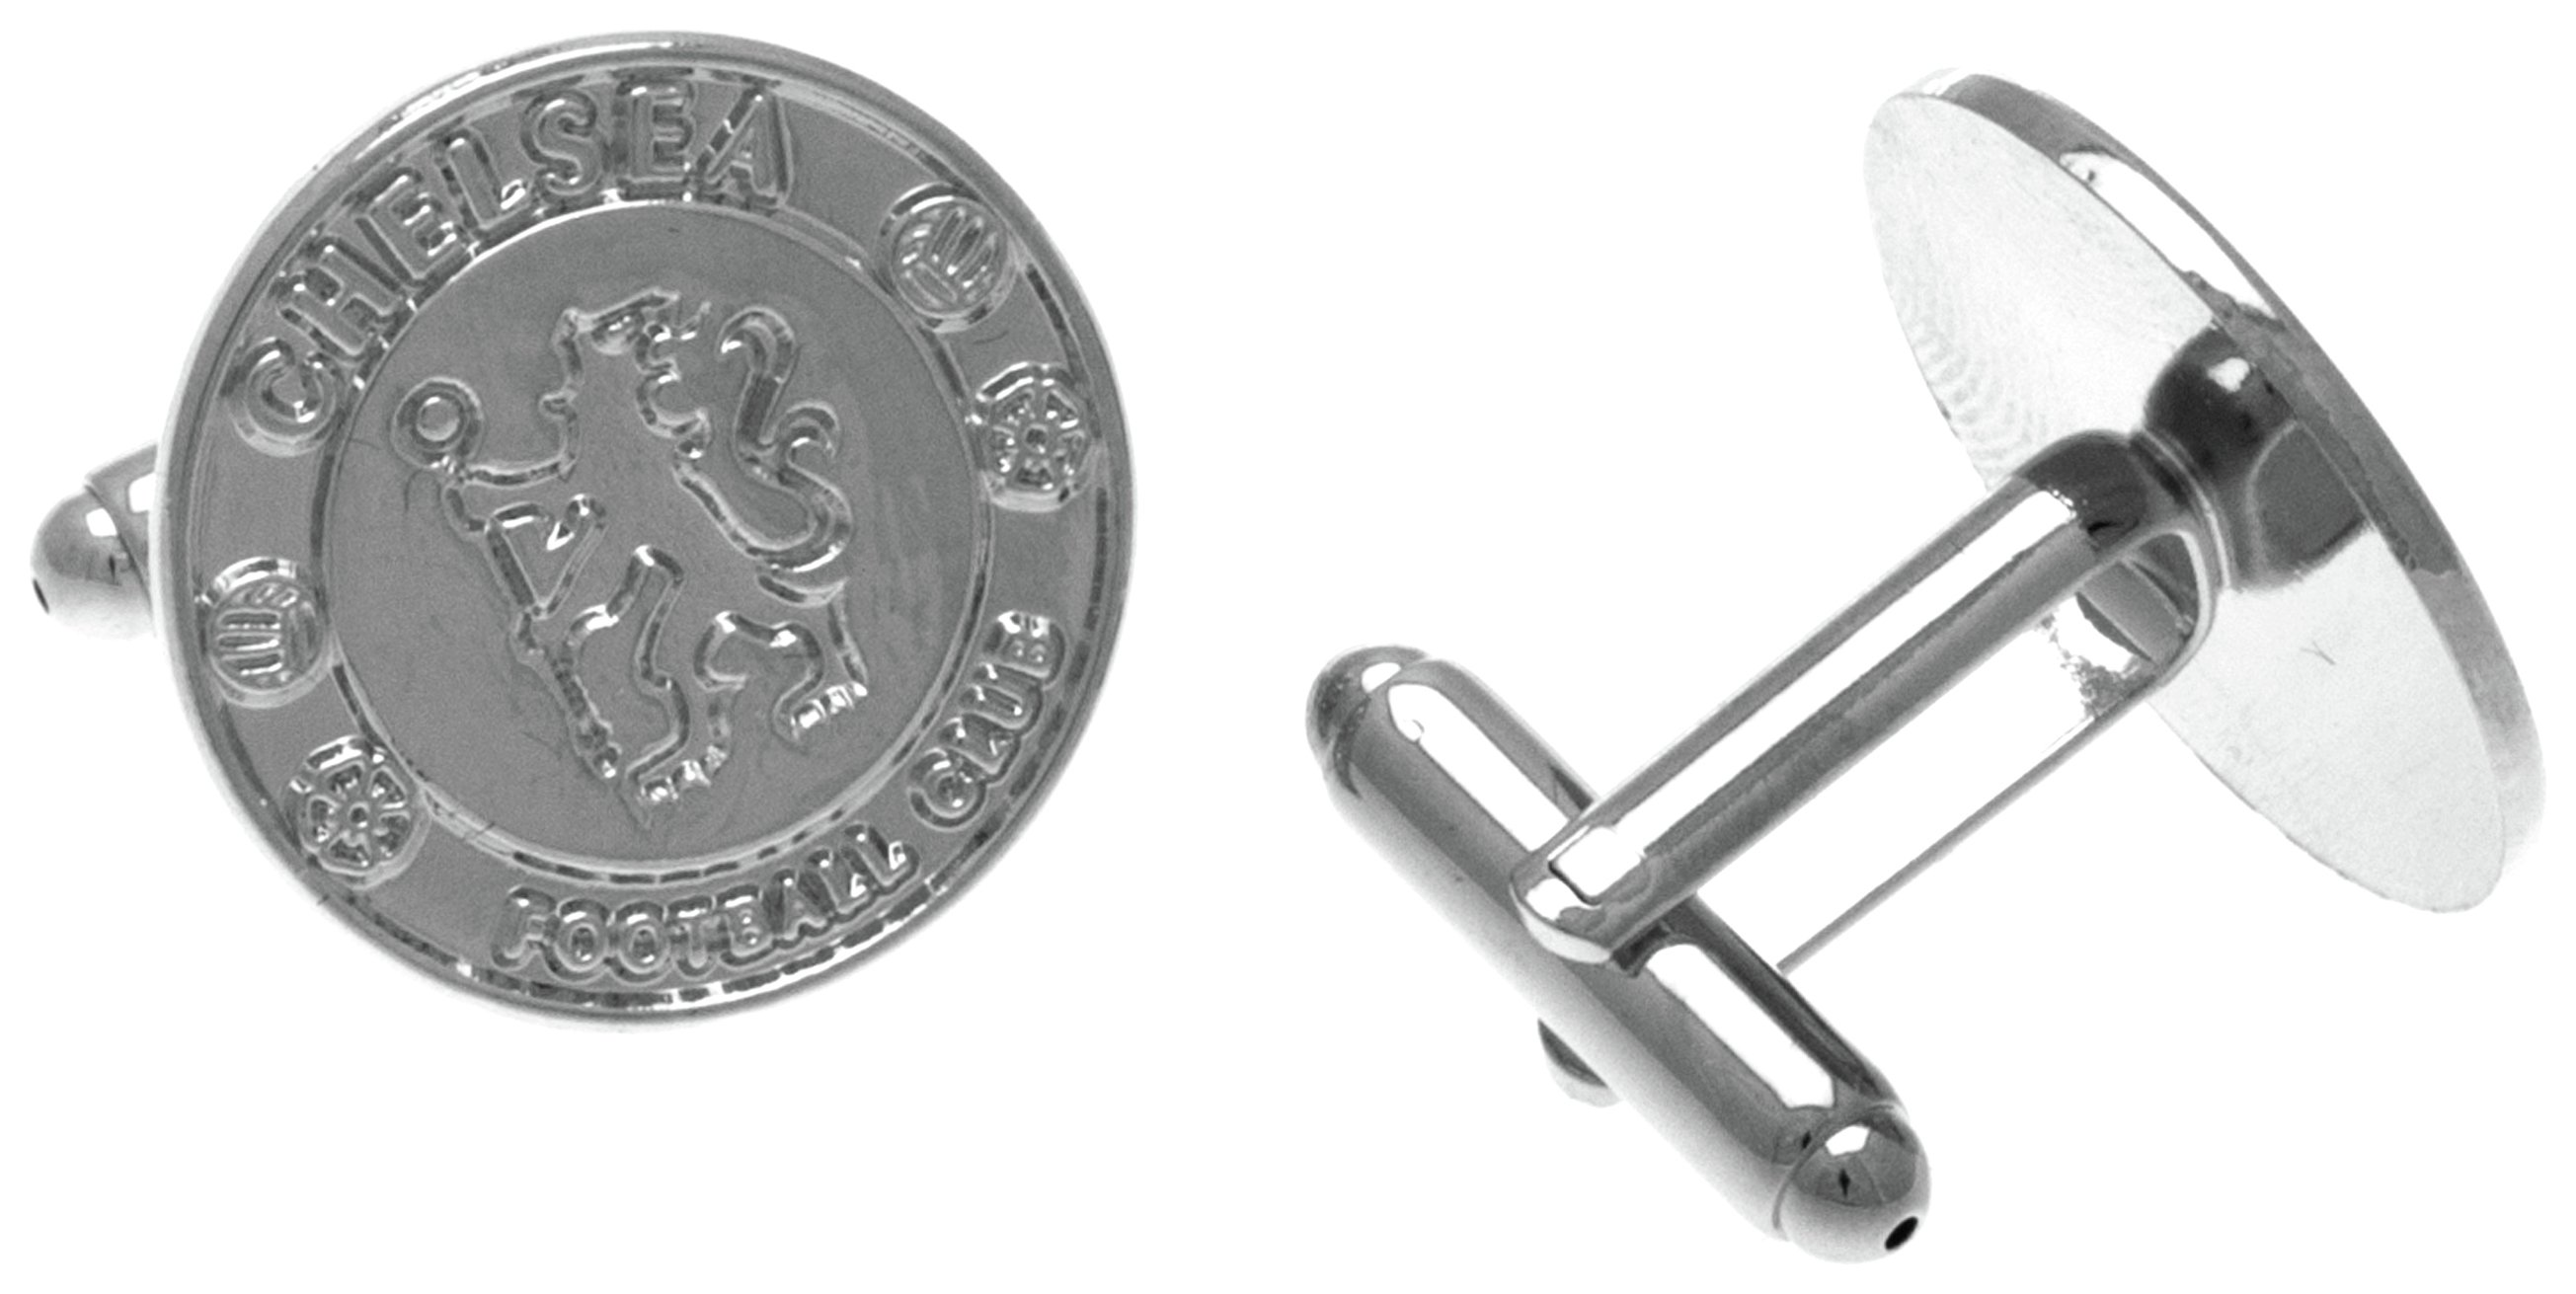 Image of Silver Plated Chelsea FC Crest Circlular Cufflinks